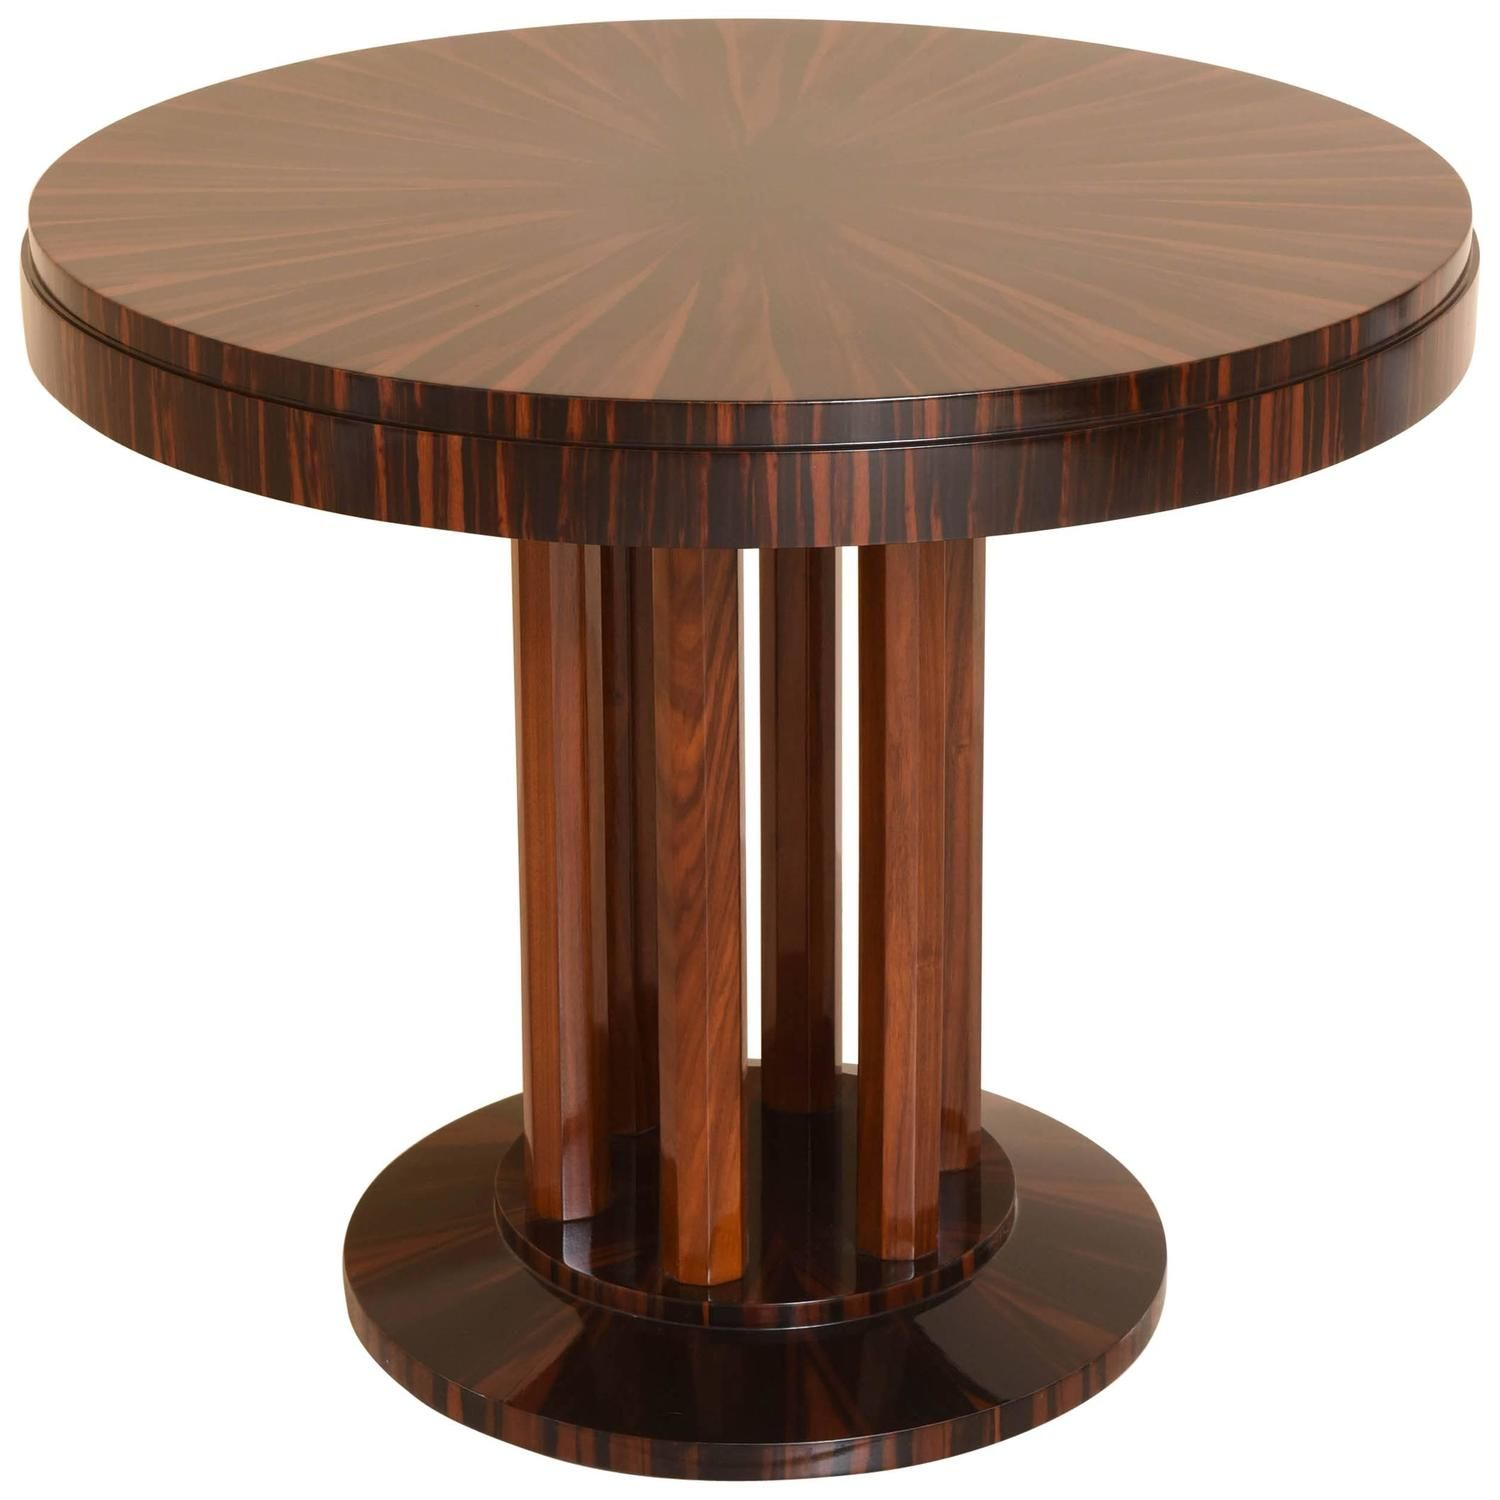 Art Deco Center Table with Macassar Wood, Maison Rinck, France, 1920s | From a…